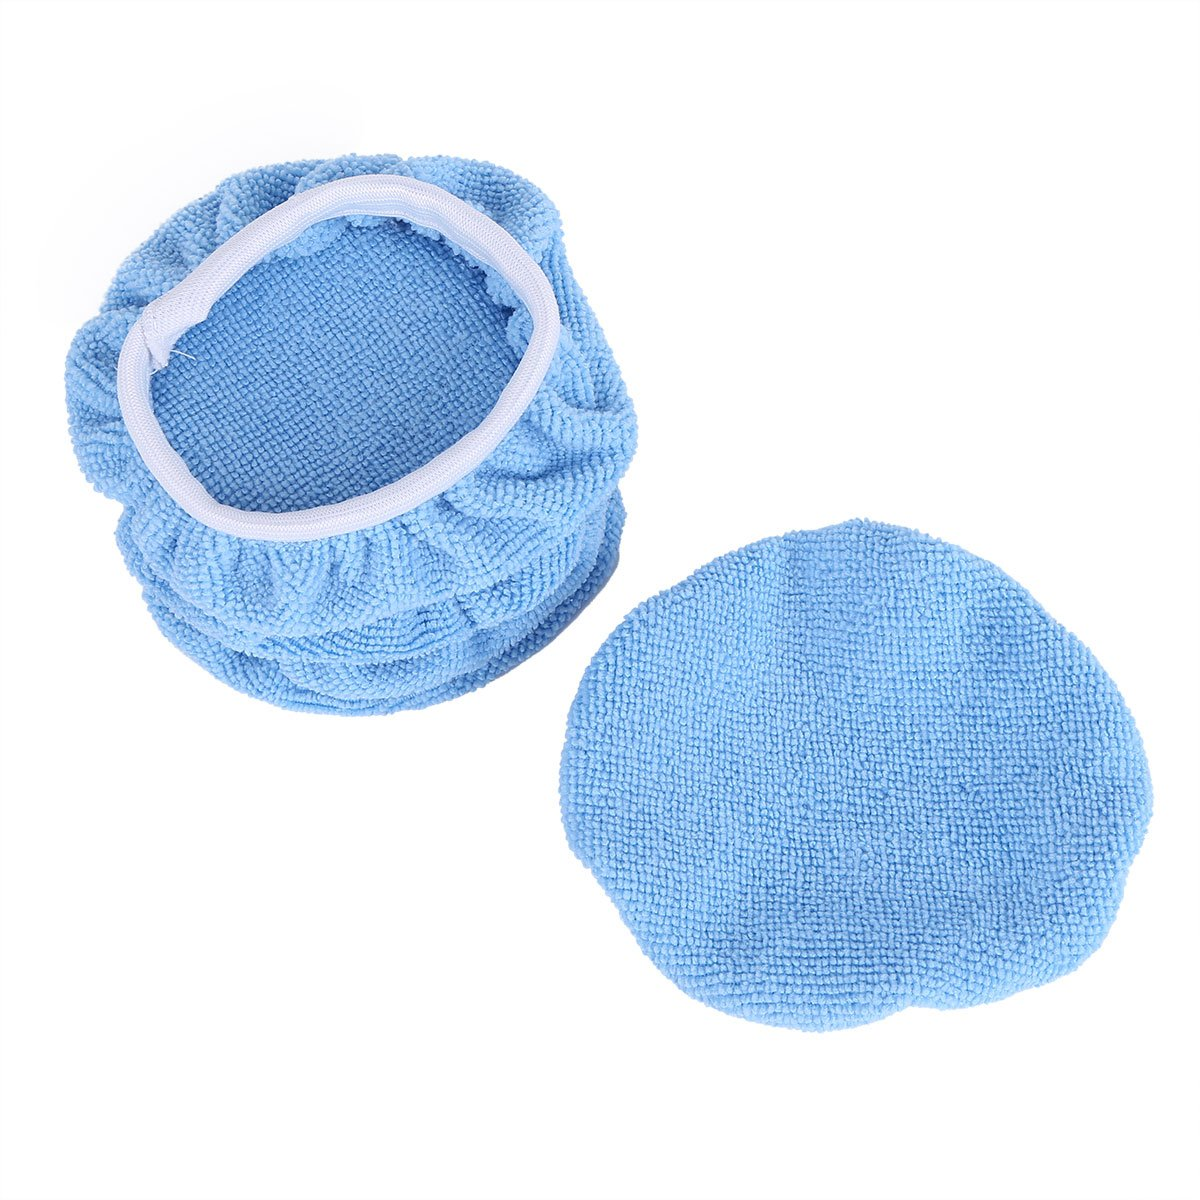 Freebily 5 Pieces Soft Microfiber Auto Car Polisher Pad Waxing Polishing Bonnet Buffing Cover 5-6/7-8/9-10 Inches Blue 7-8 Inches by Freebily (Image #3)